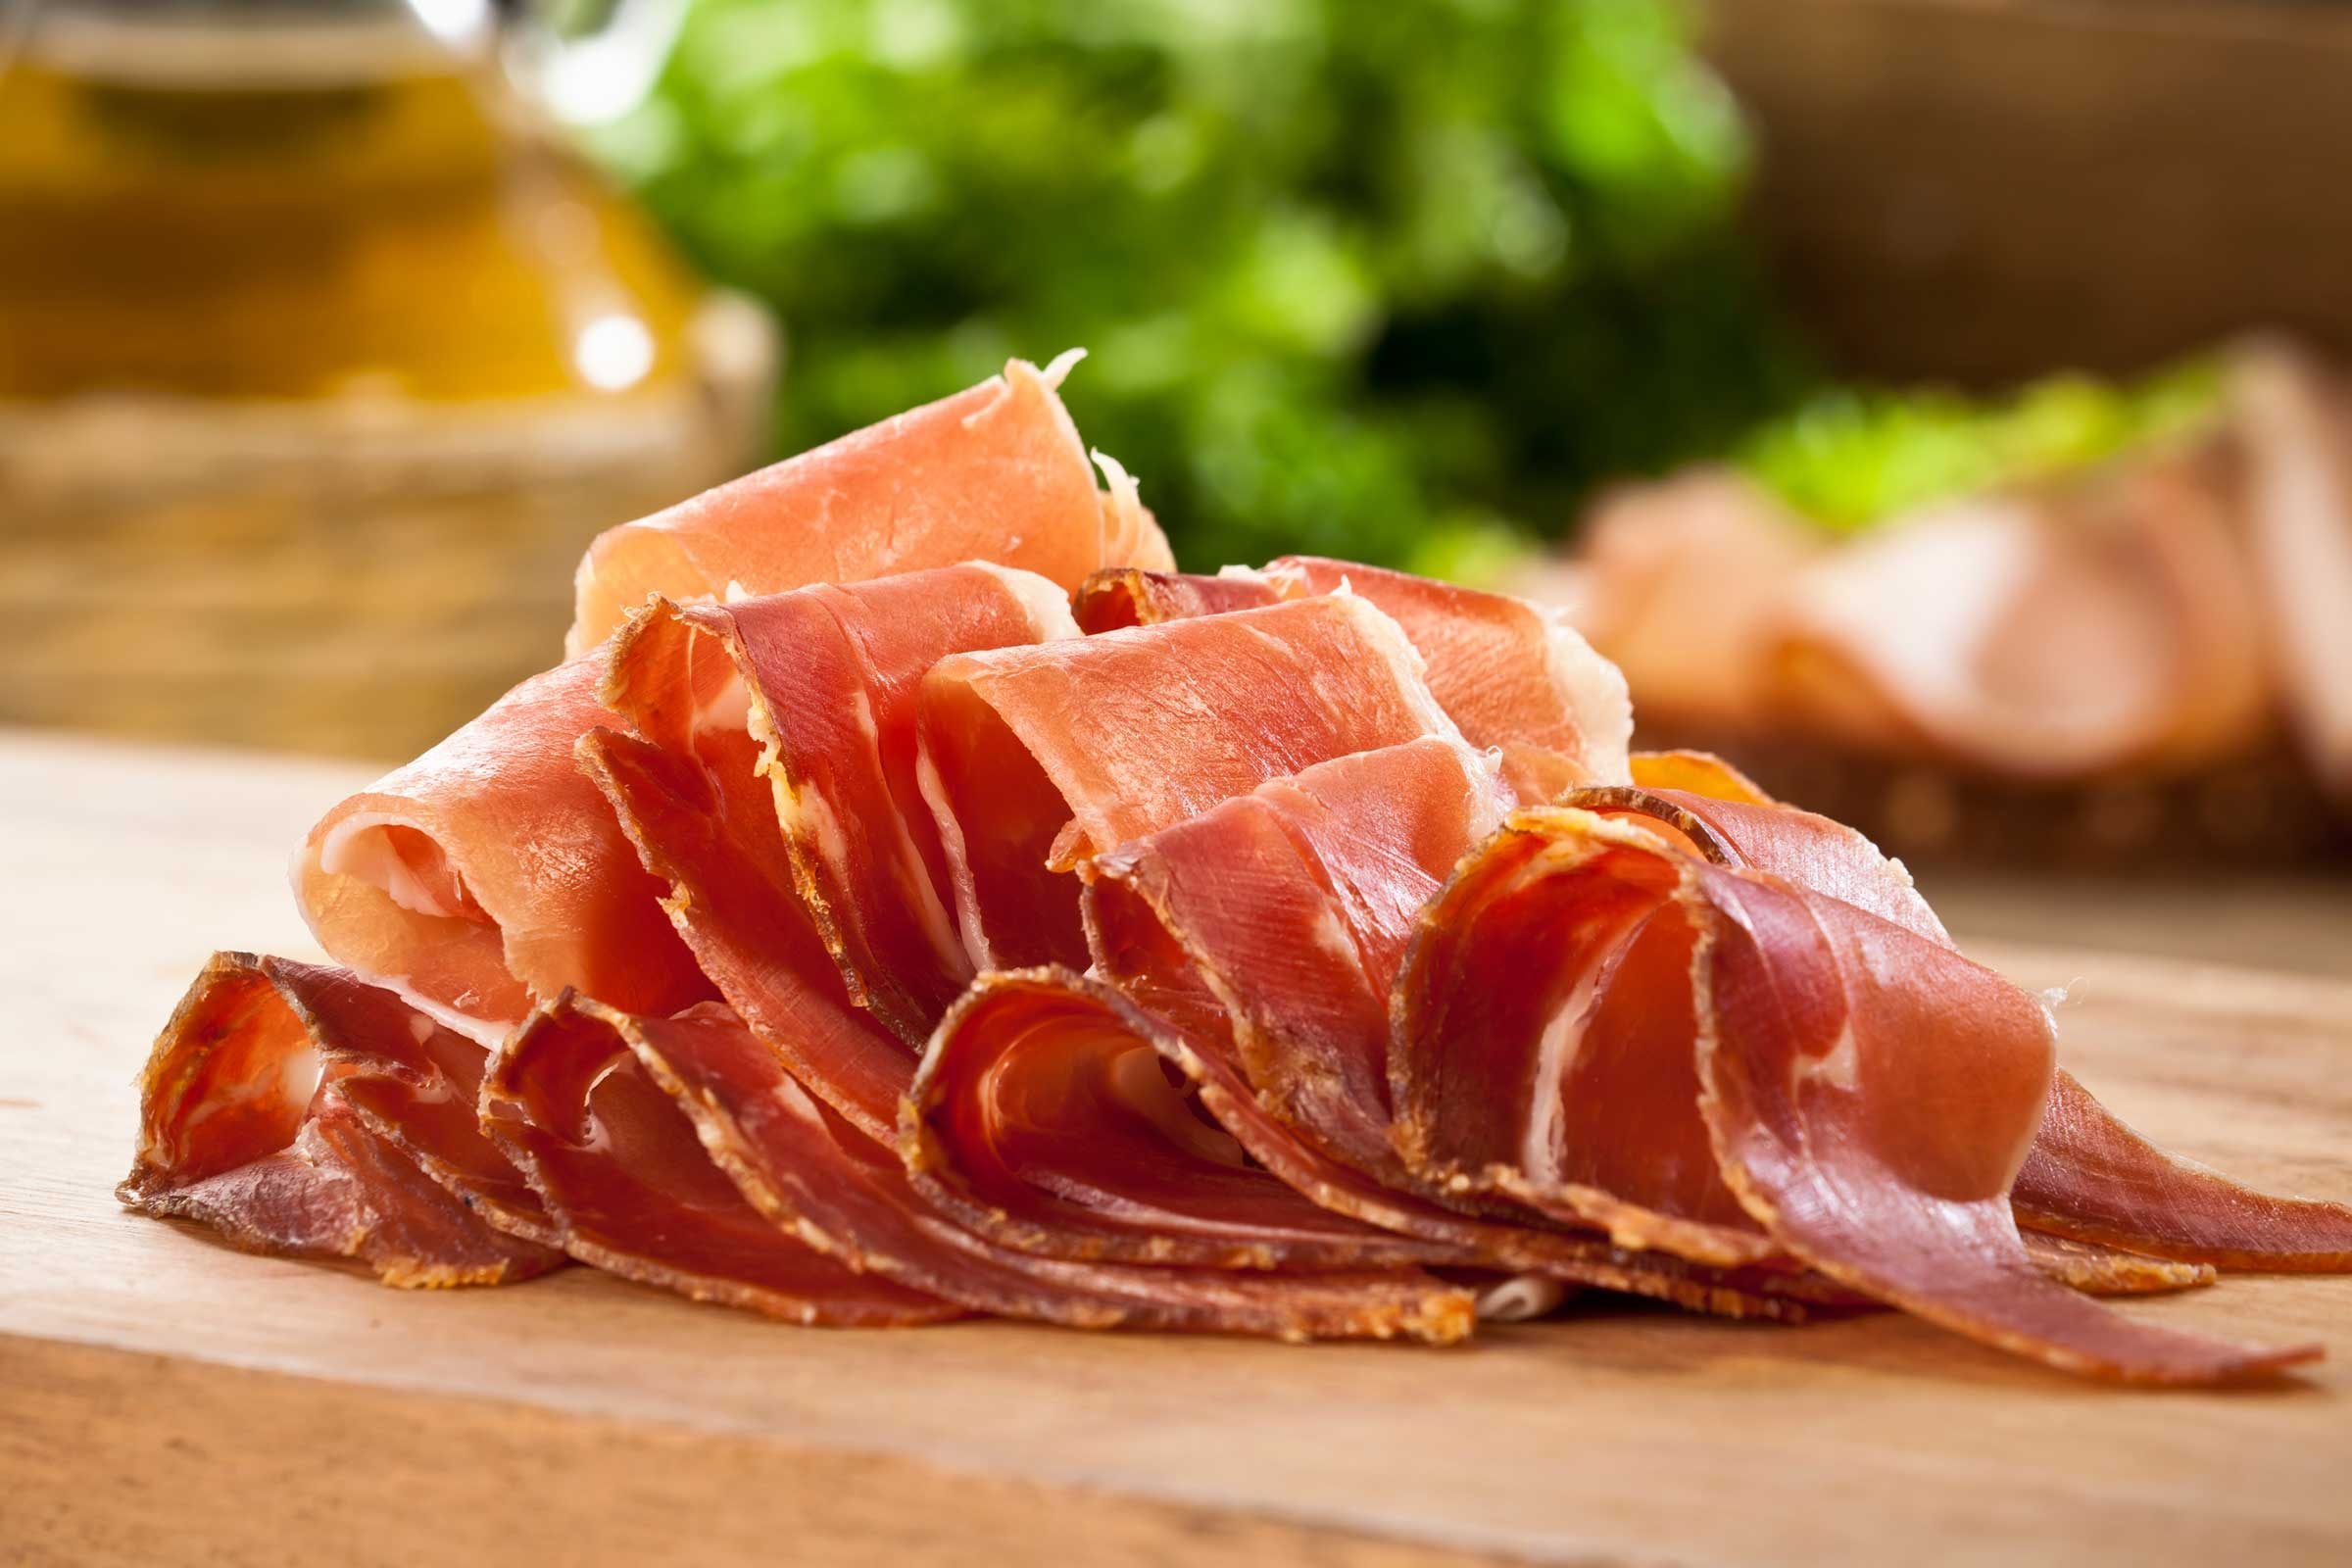 9Signs That Your Body Might Not BeProperly Digesting Meat